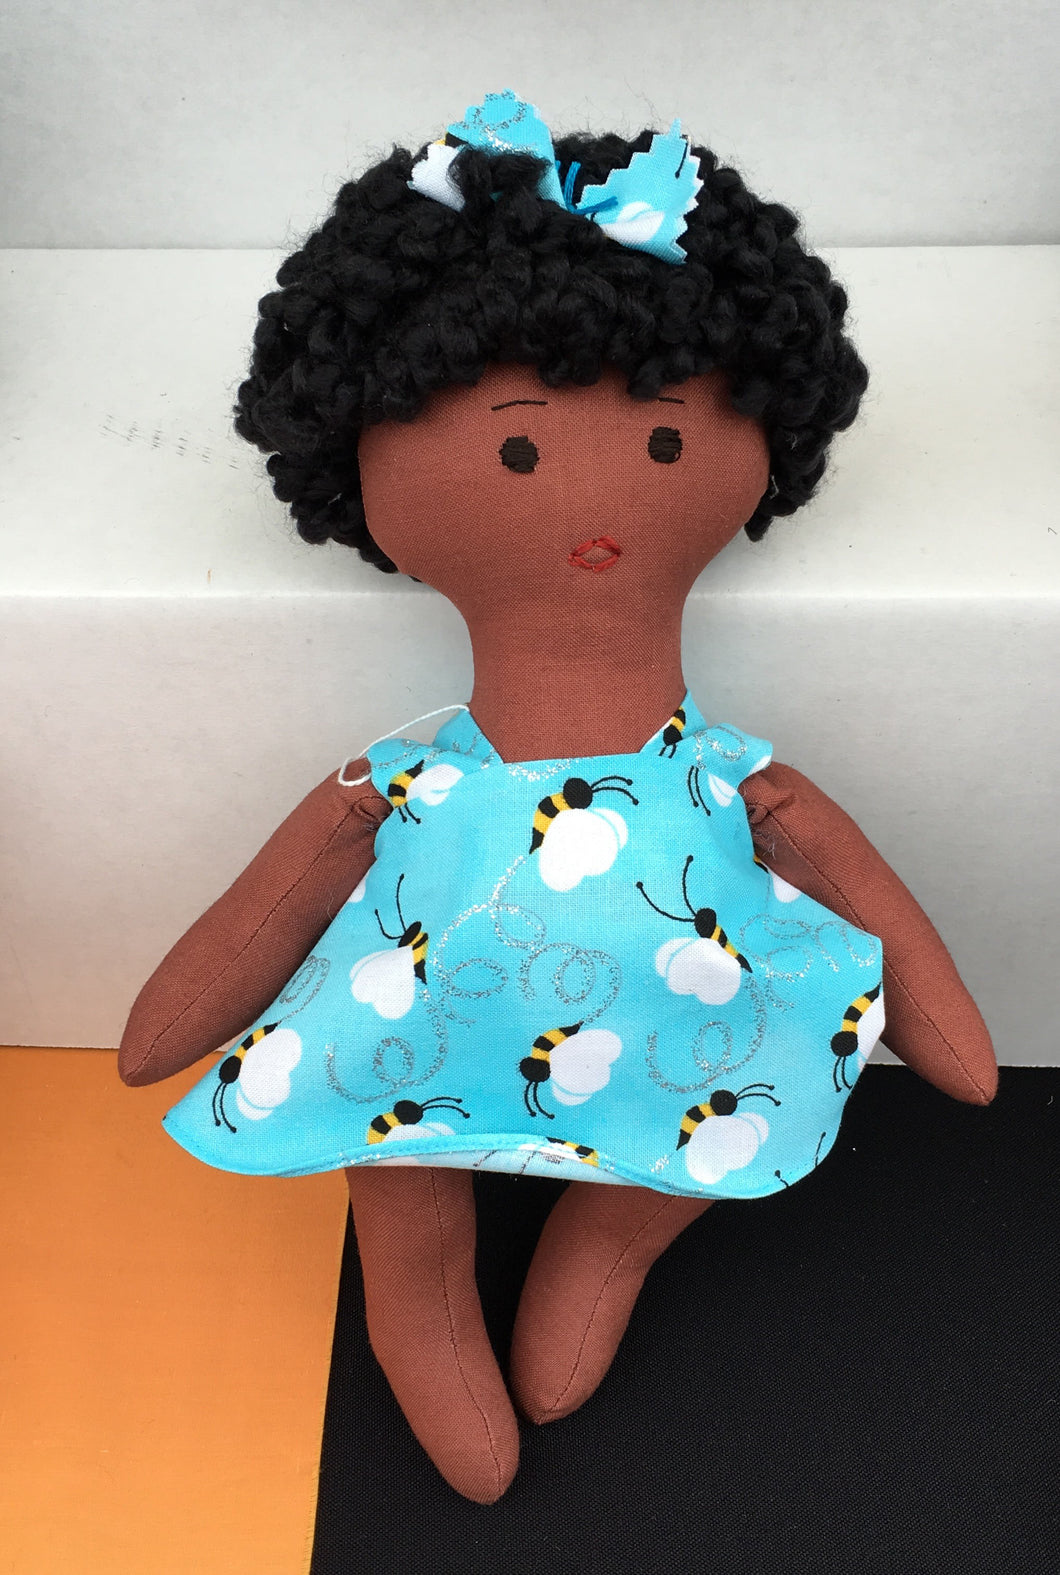 medium brown African-American baby doll with afro and light blue dress